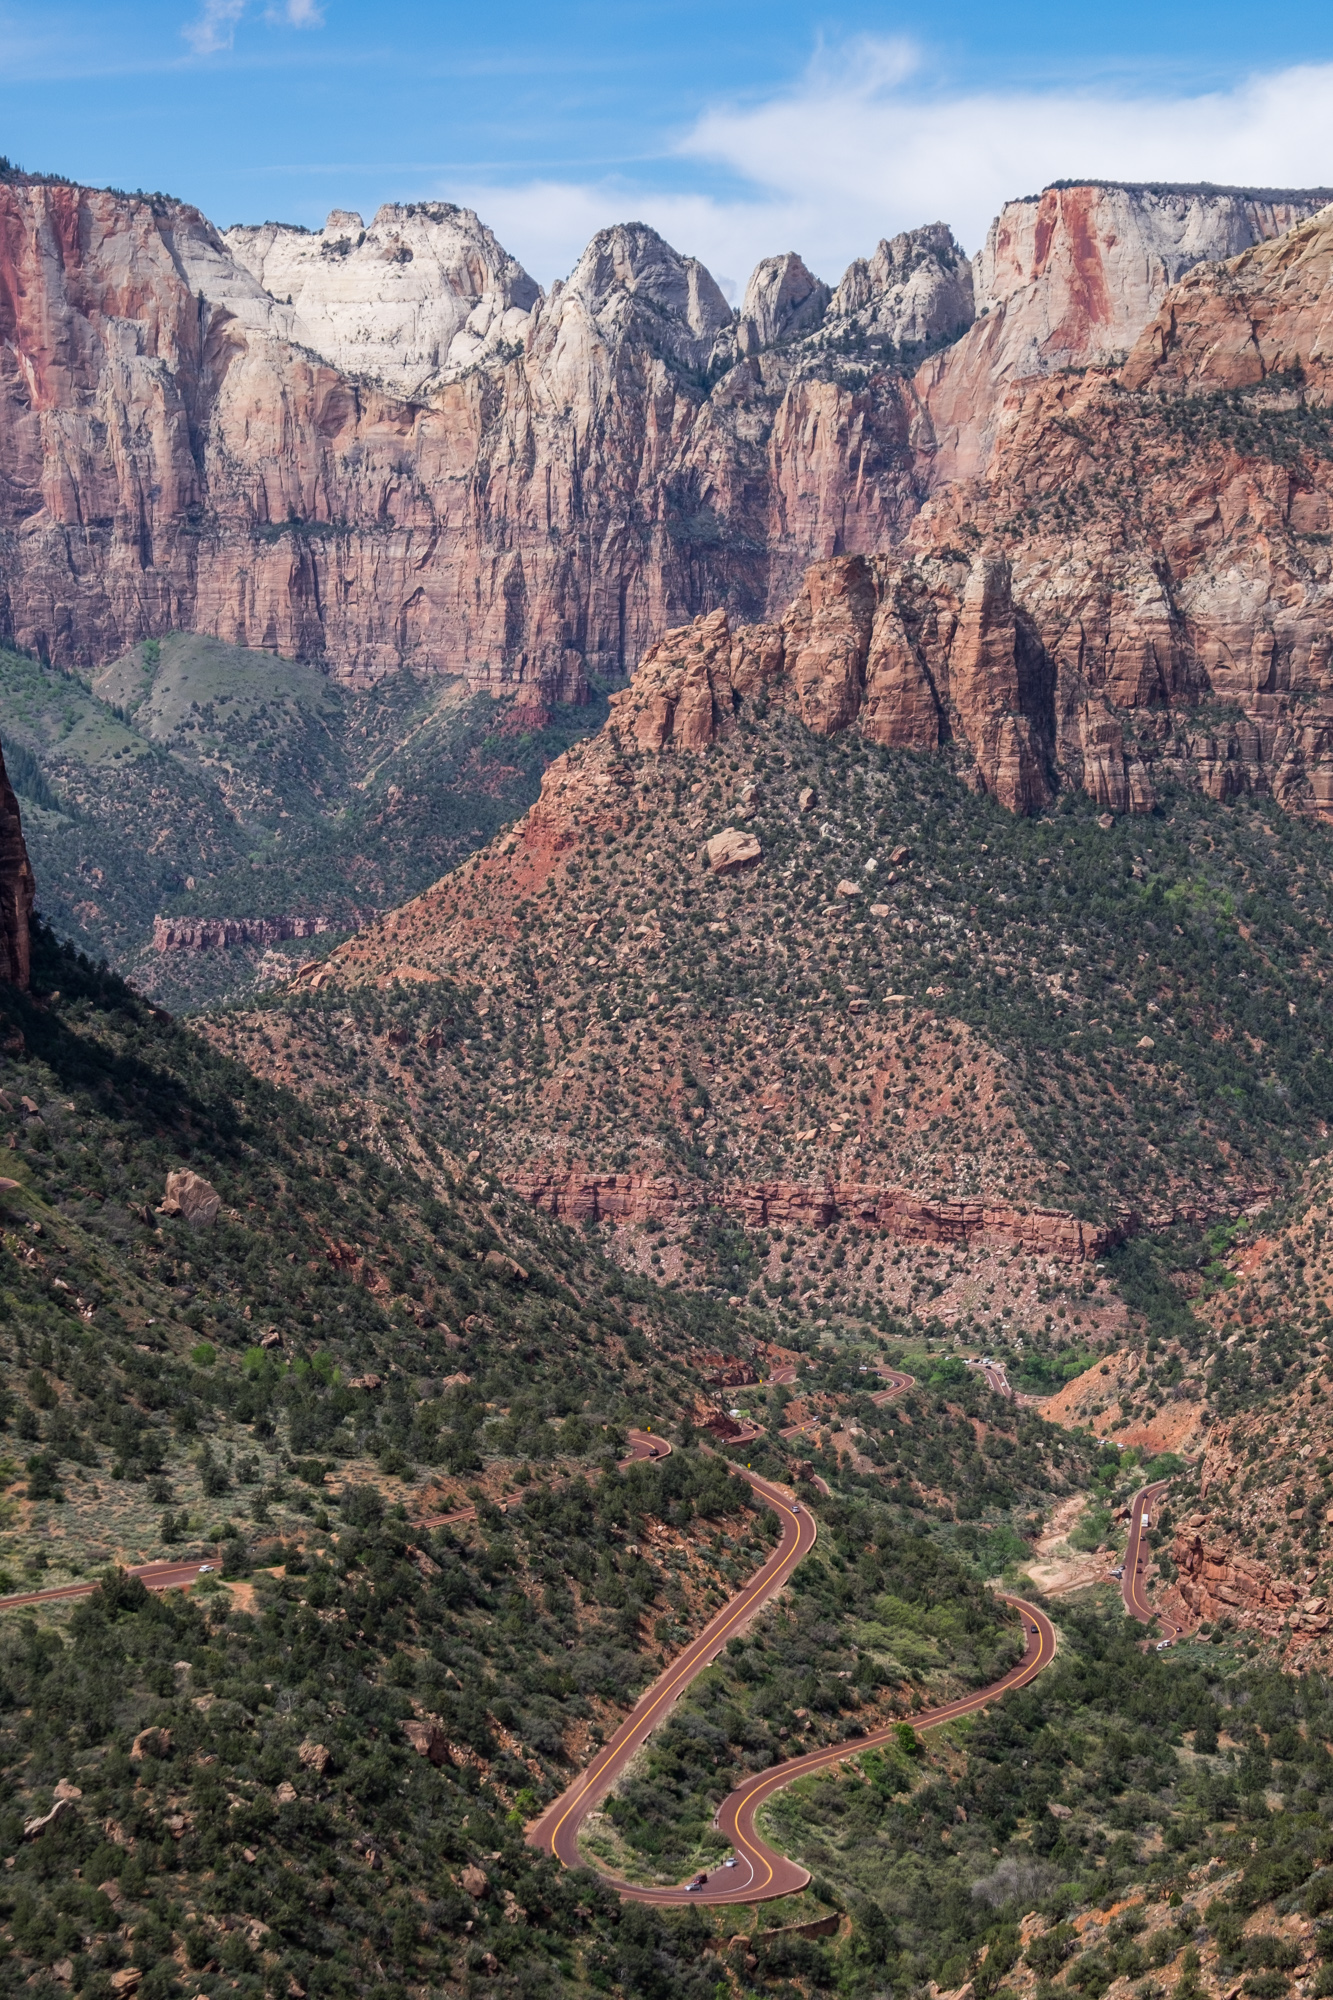 20160410-SP-Zion National Park-_DSF0981.jpg